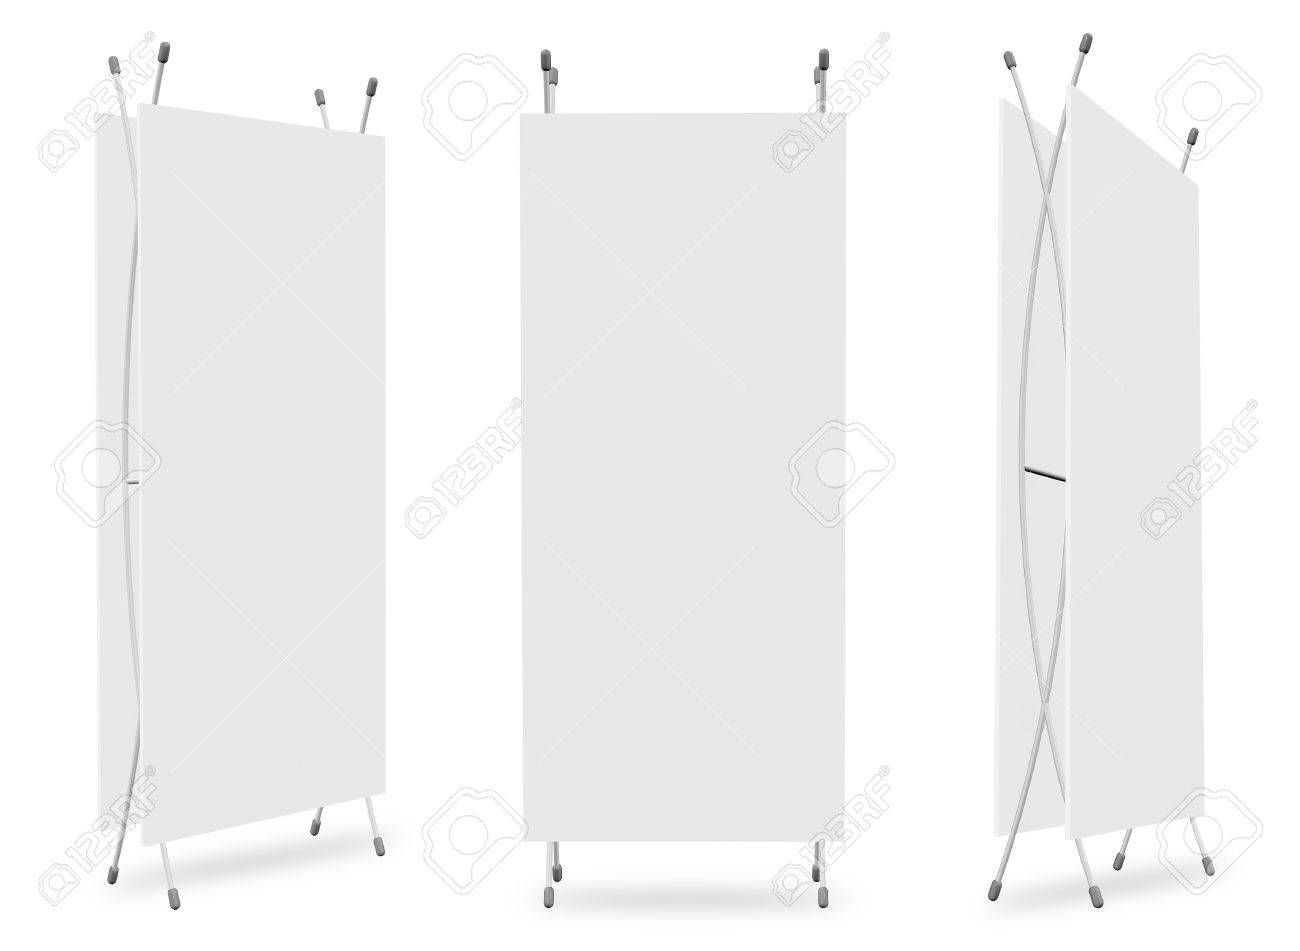 Blank Banner Stand Display (3 View) Template For Design Work Stock ...